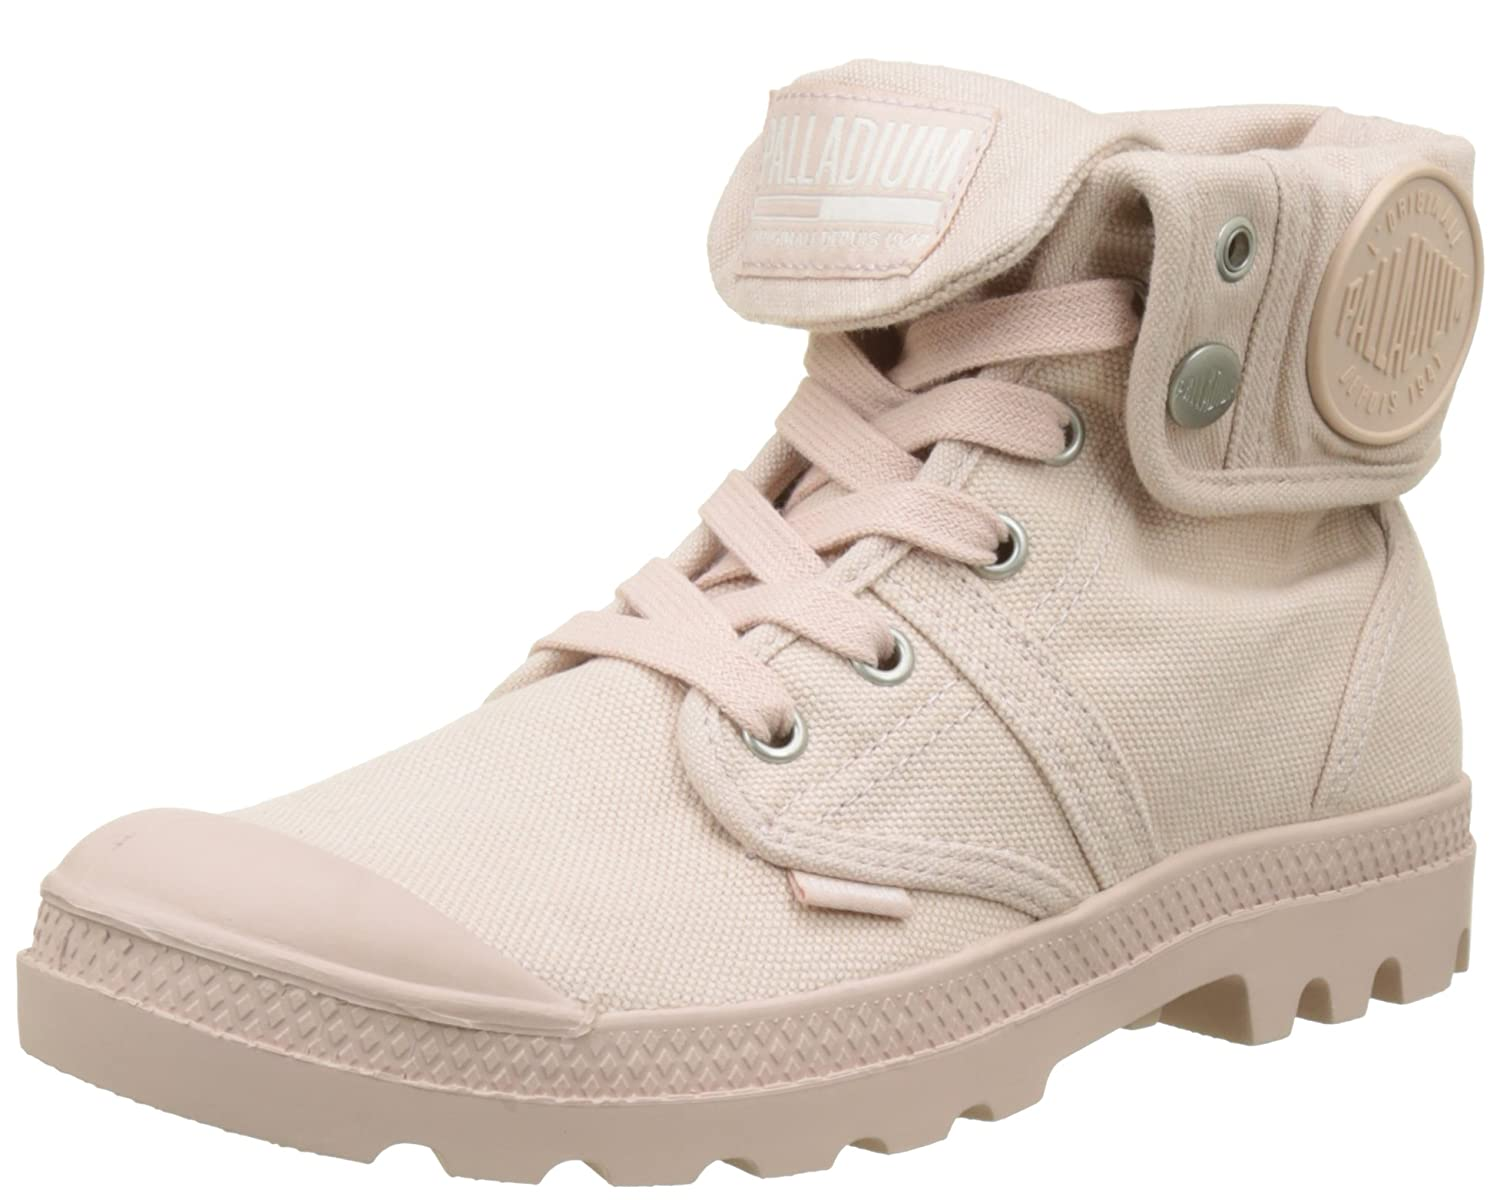 Rose (Peach Whip K74) Palladium Pallabrouse Baggy, Bottes & Bottines Bottines Souples Femme